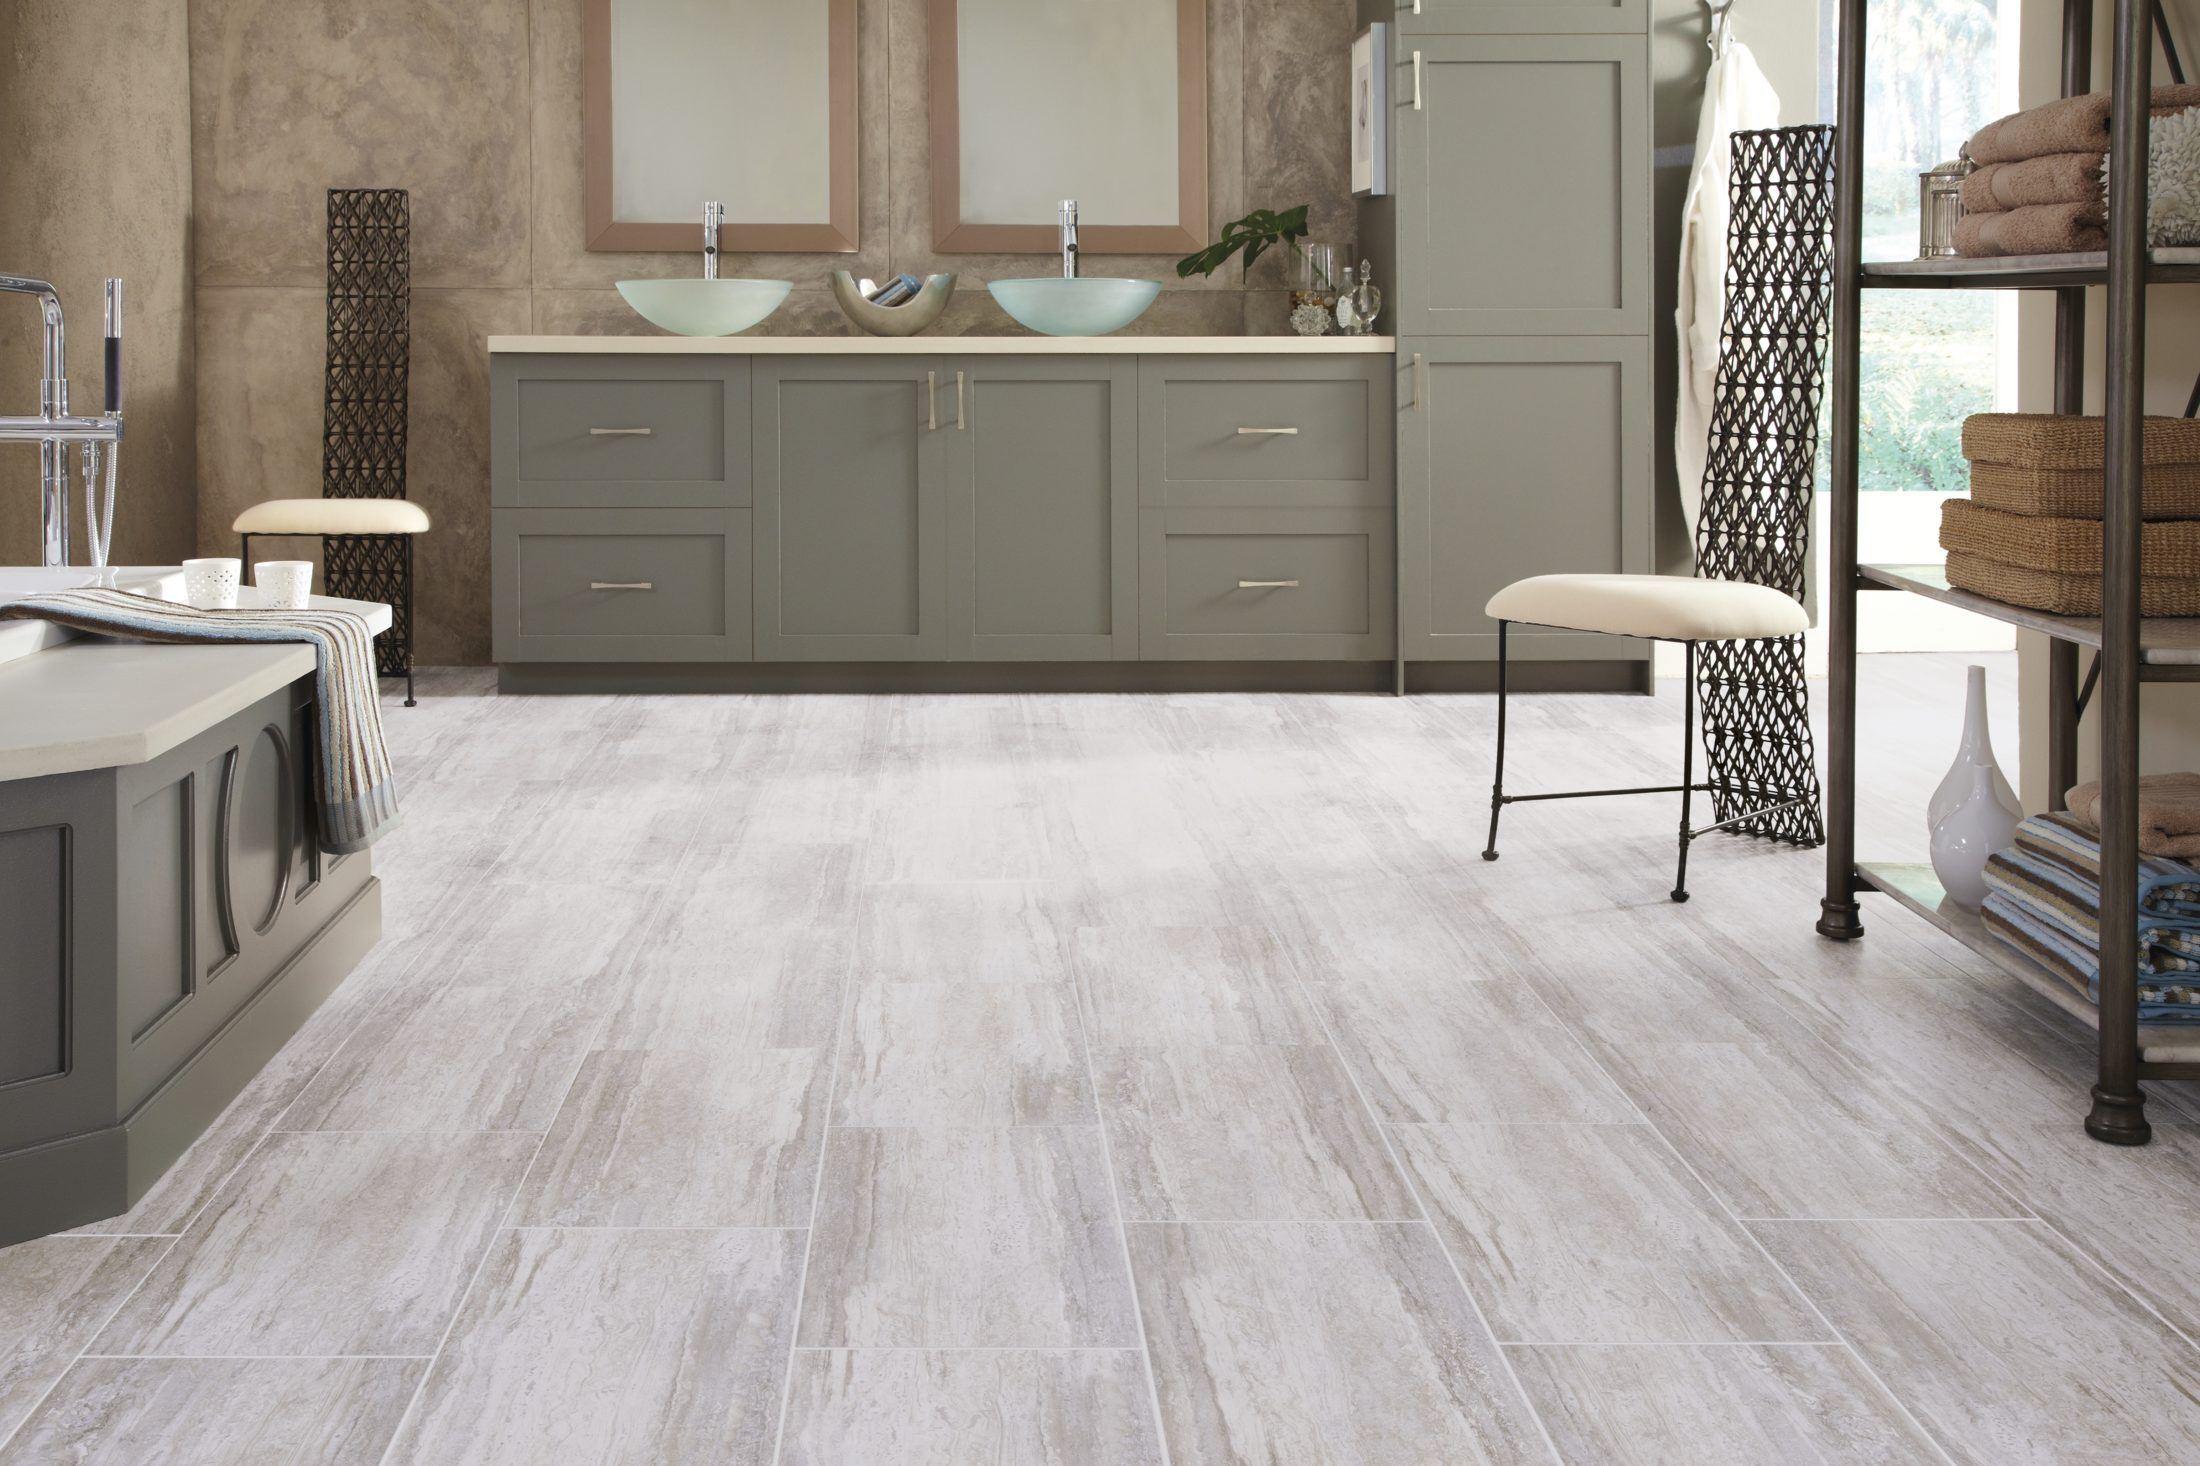 Mannington adura max luxury vinyl plank sea mist mar111 12 mannington vinyl flooring mannington flooring